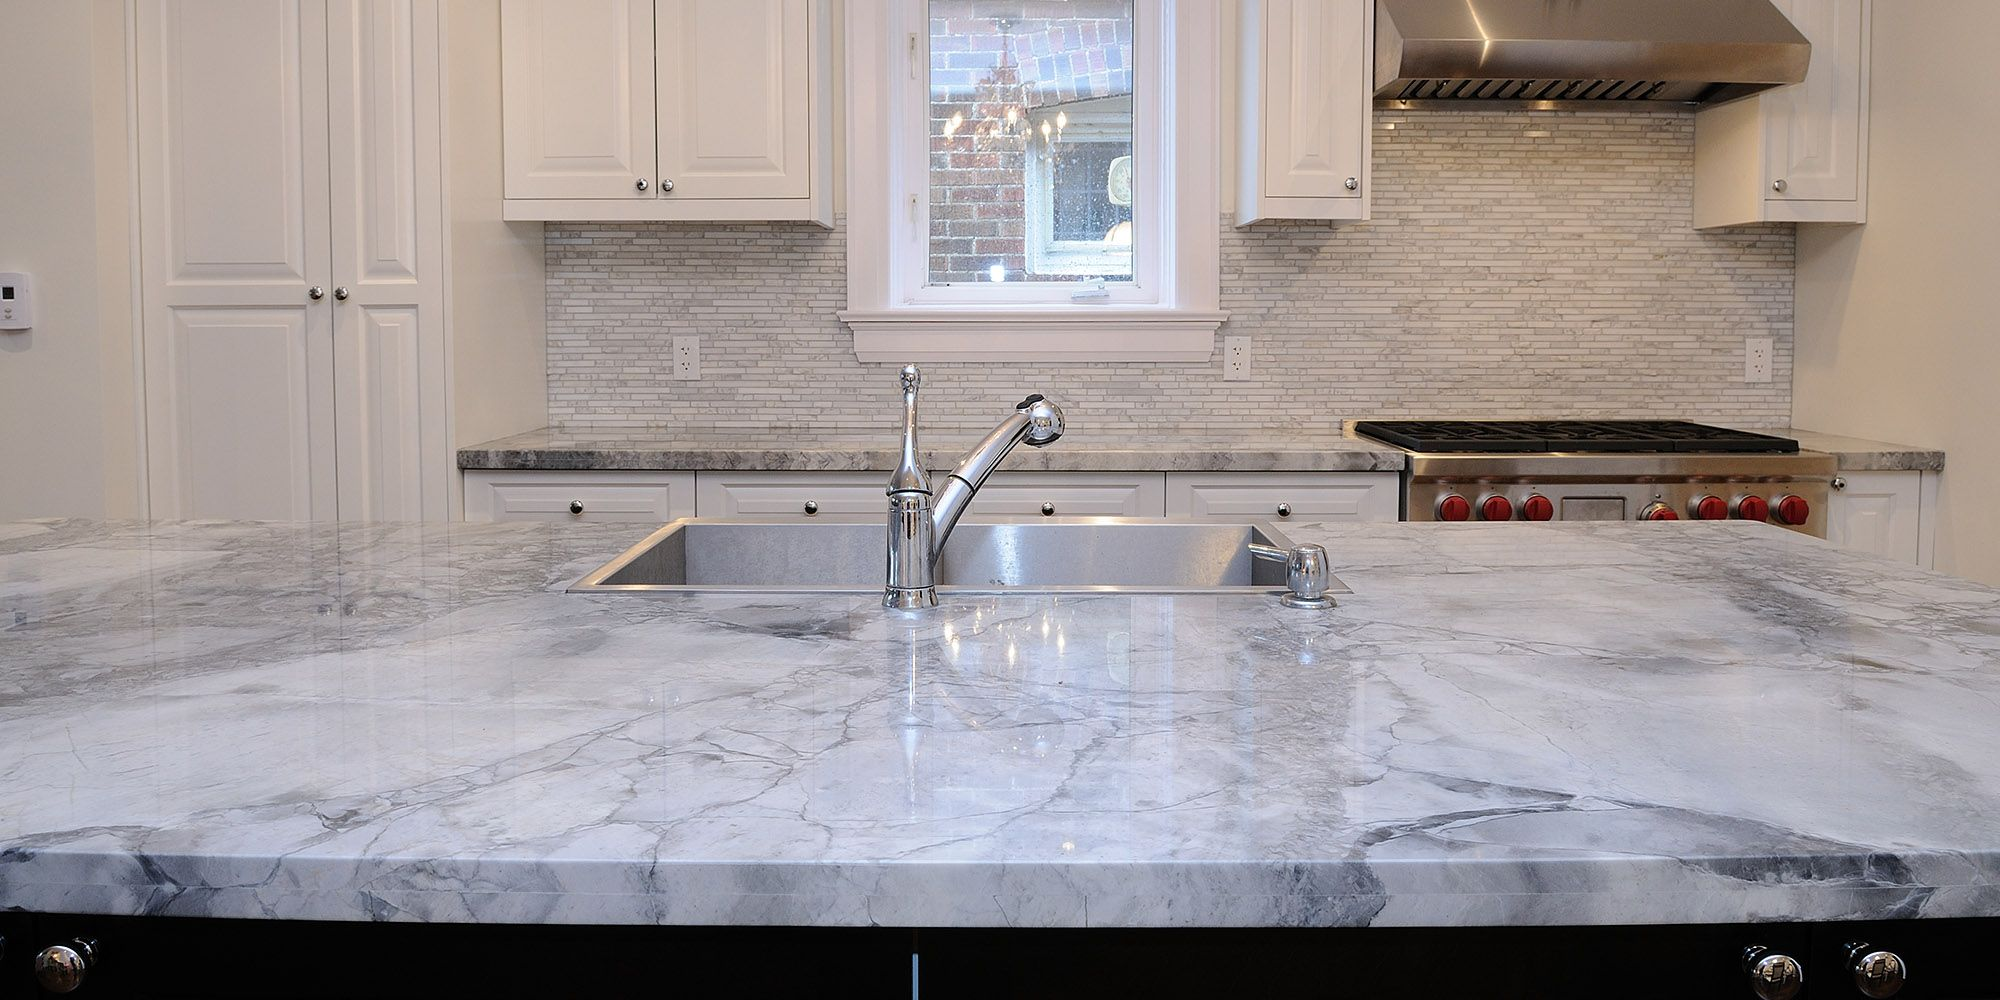 Cartoon kitchen counter gallery - Torontogranite Com Toronto Granite Quartz Marble Countertops At Affordable Prices